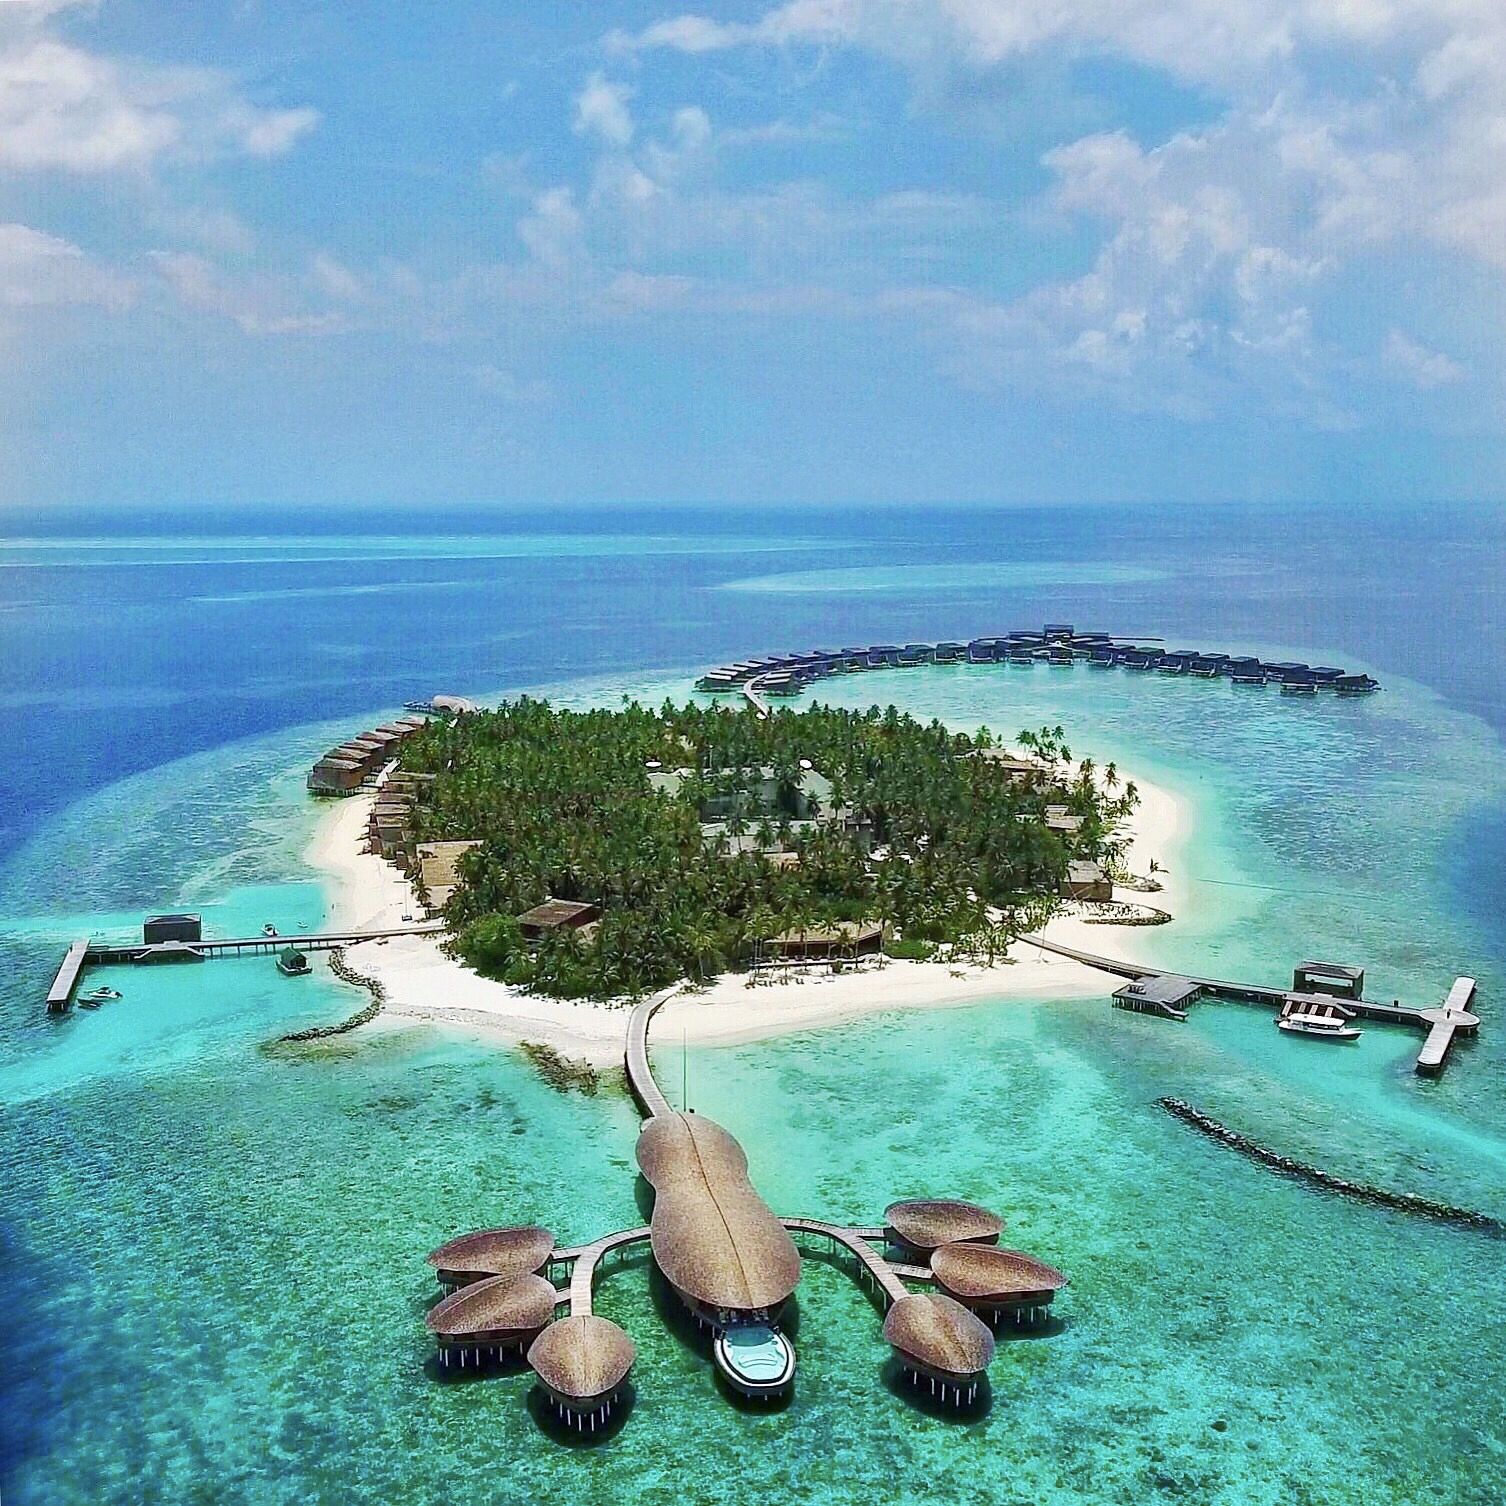 Langkawi Island: Our Stay At The St. Regis Maldives